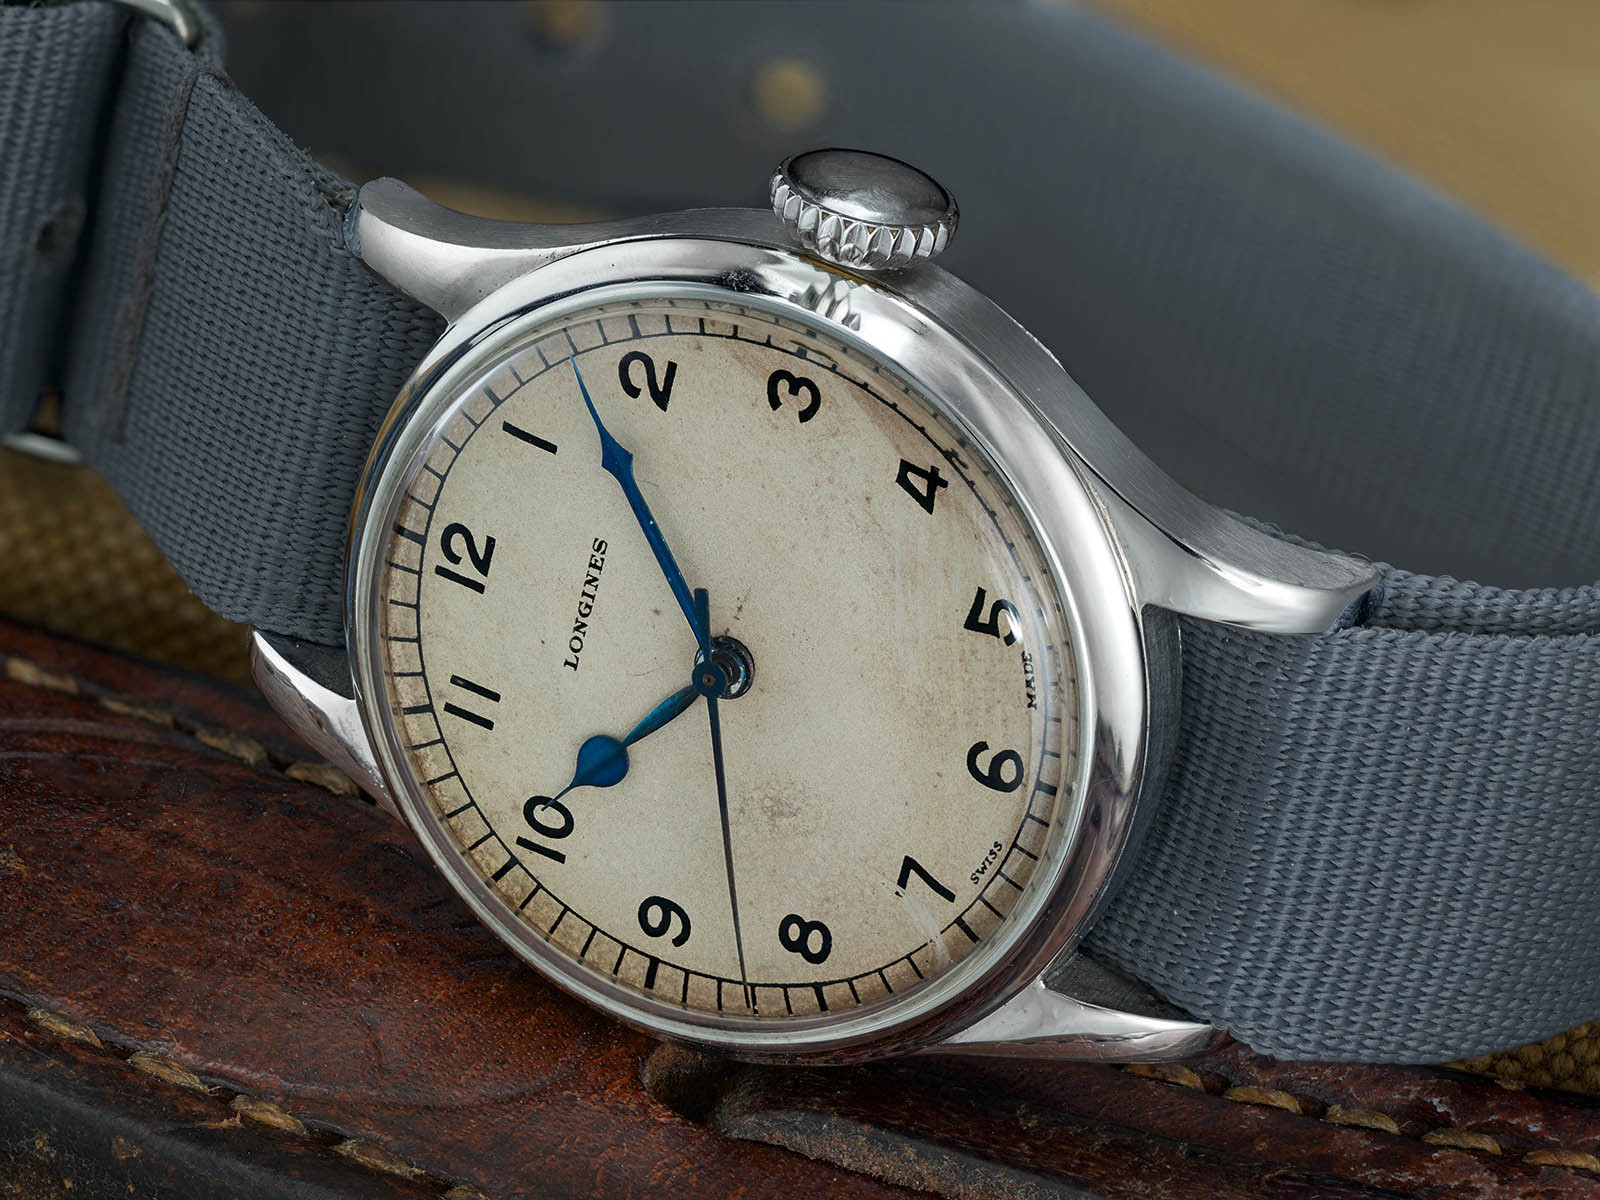 The new Longines looks very similar to the original model in 1940s.